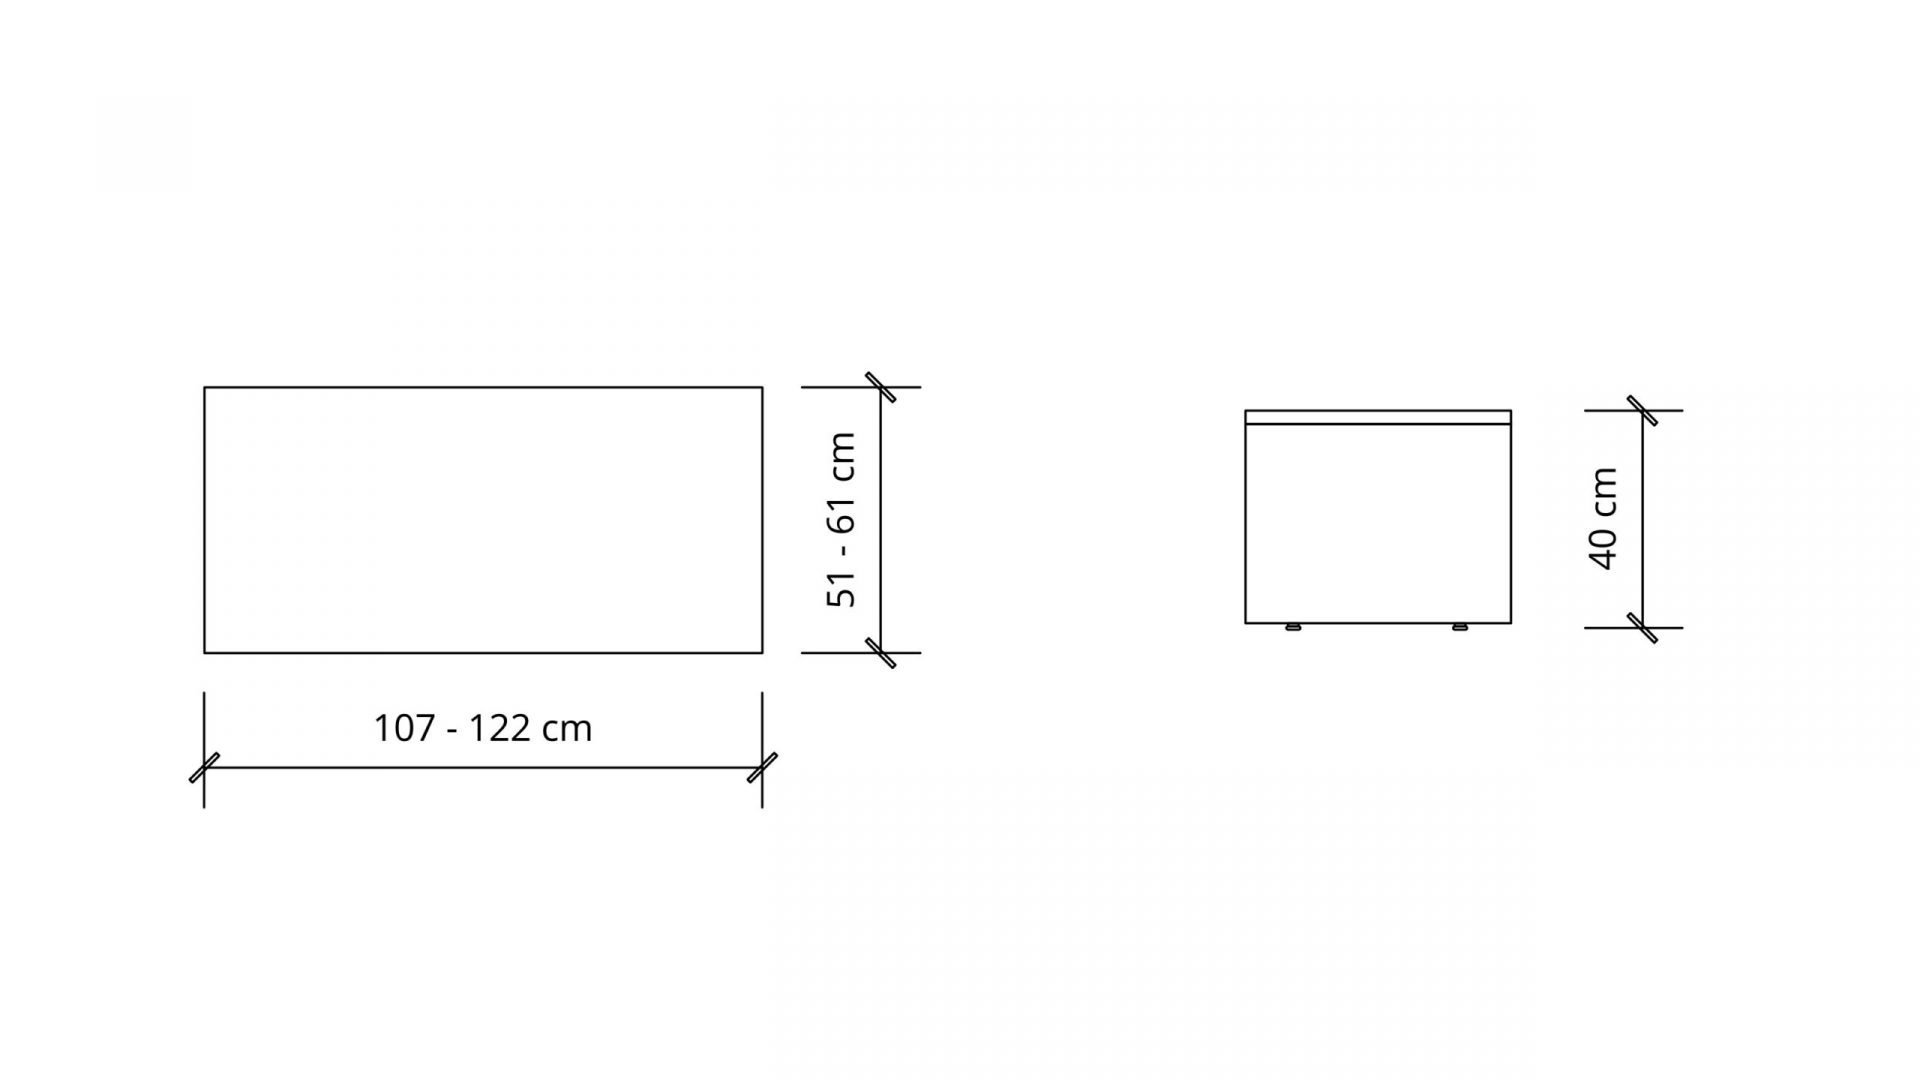 Dimensions of Rectangular Coffee Table 1651